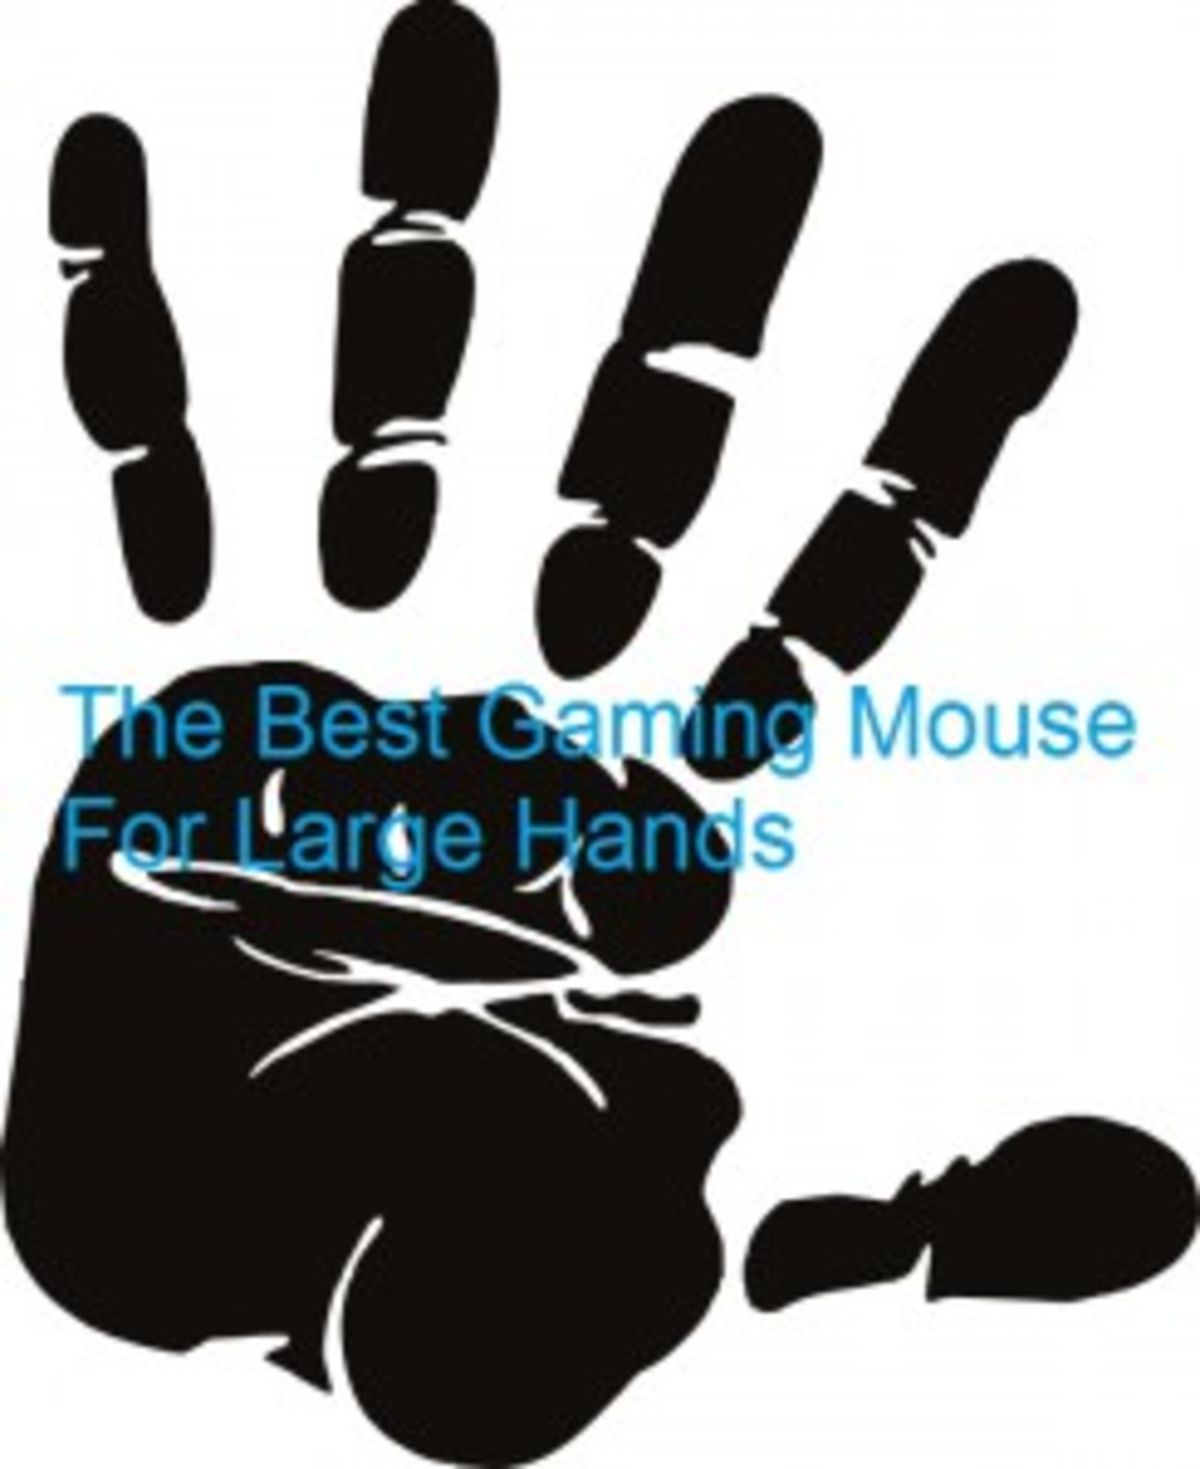 Headline for The Best Gaming Mouse For Large Hands 2016